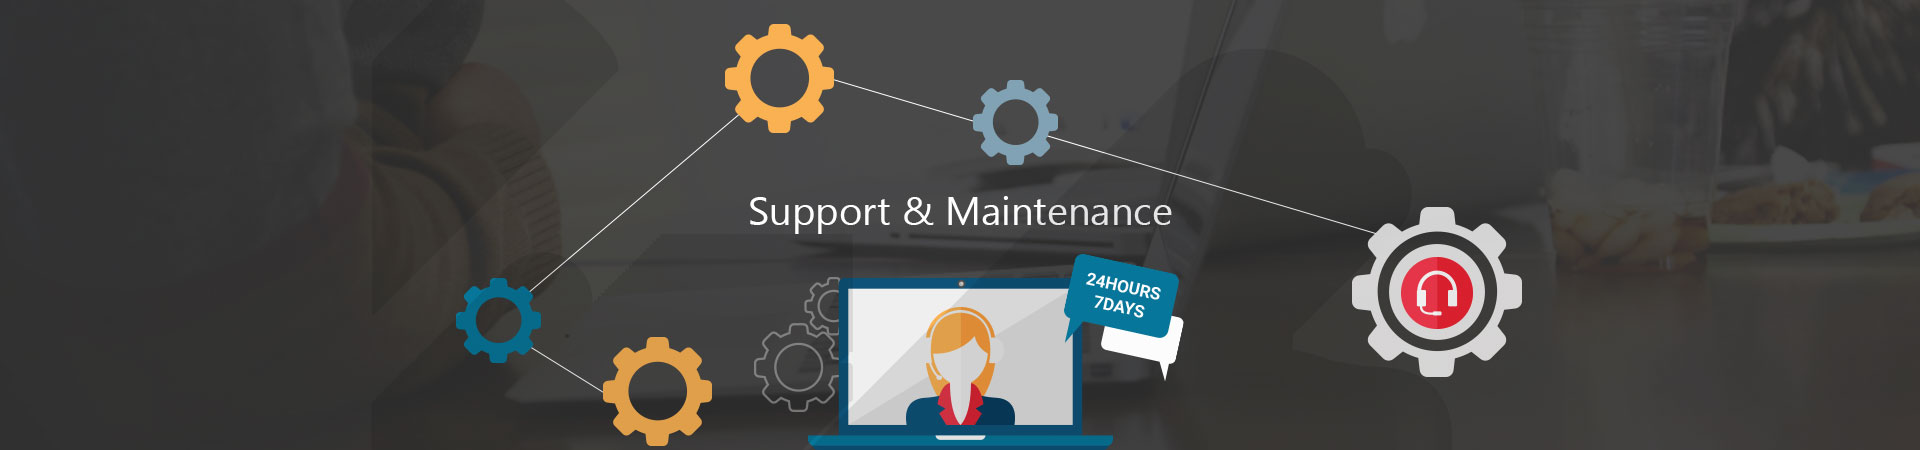 support-mantainance